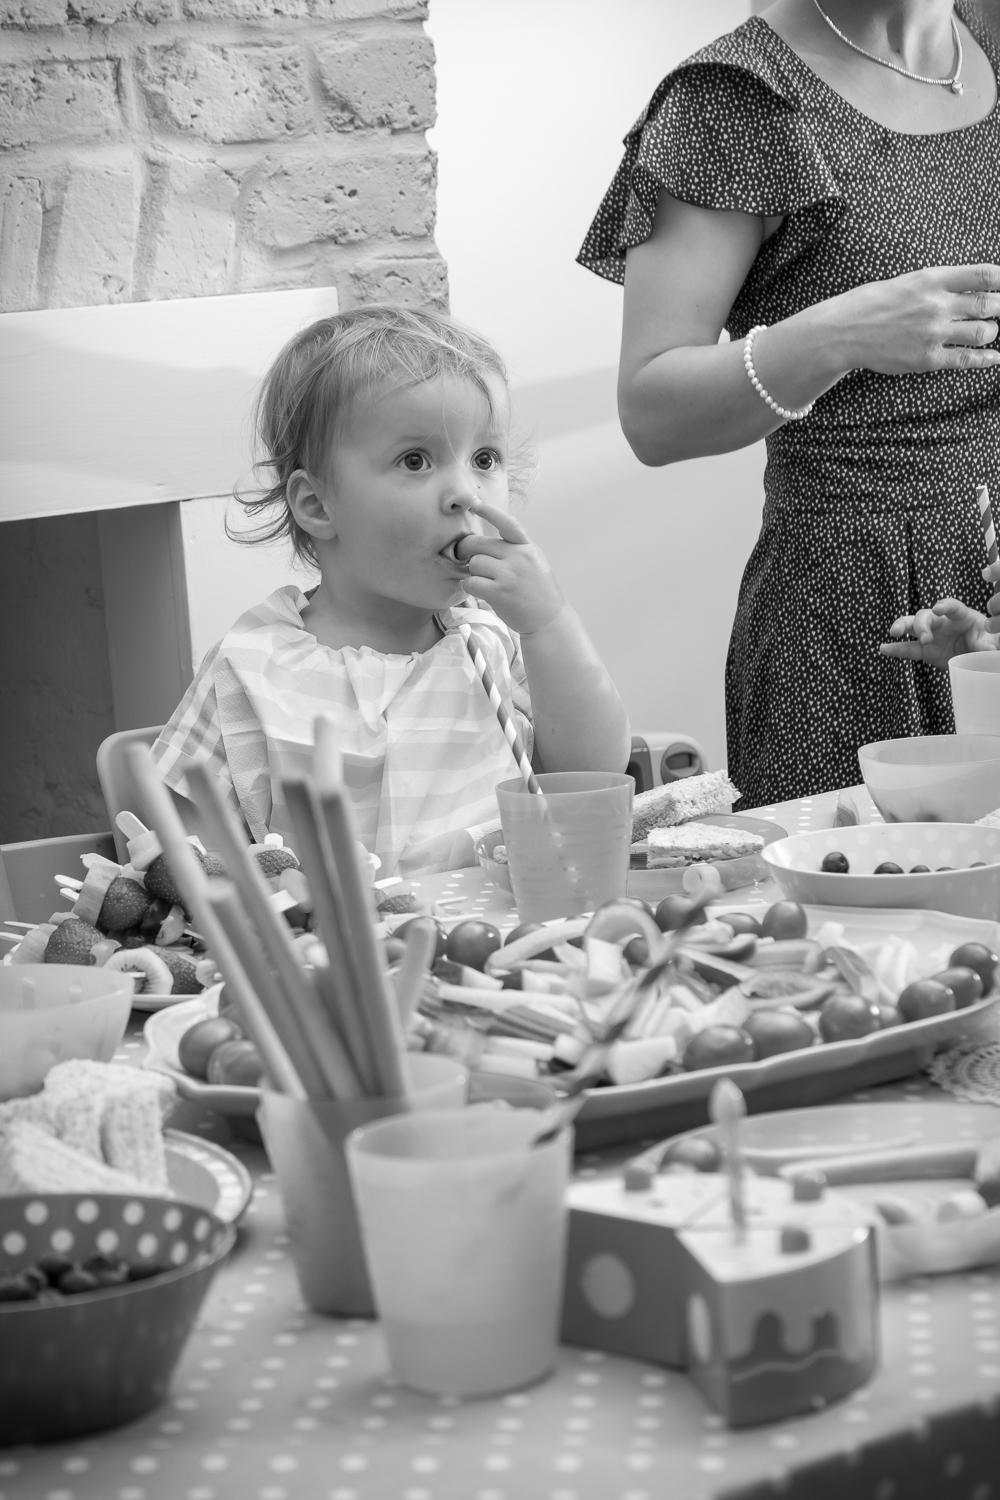 A two-year-old at her birthday party eating her birthday lunch